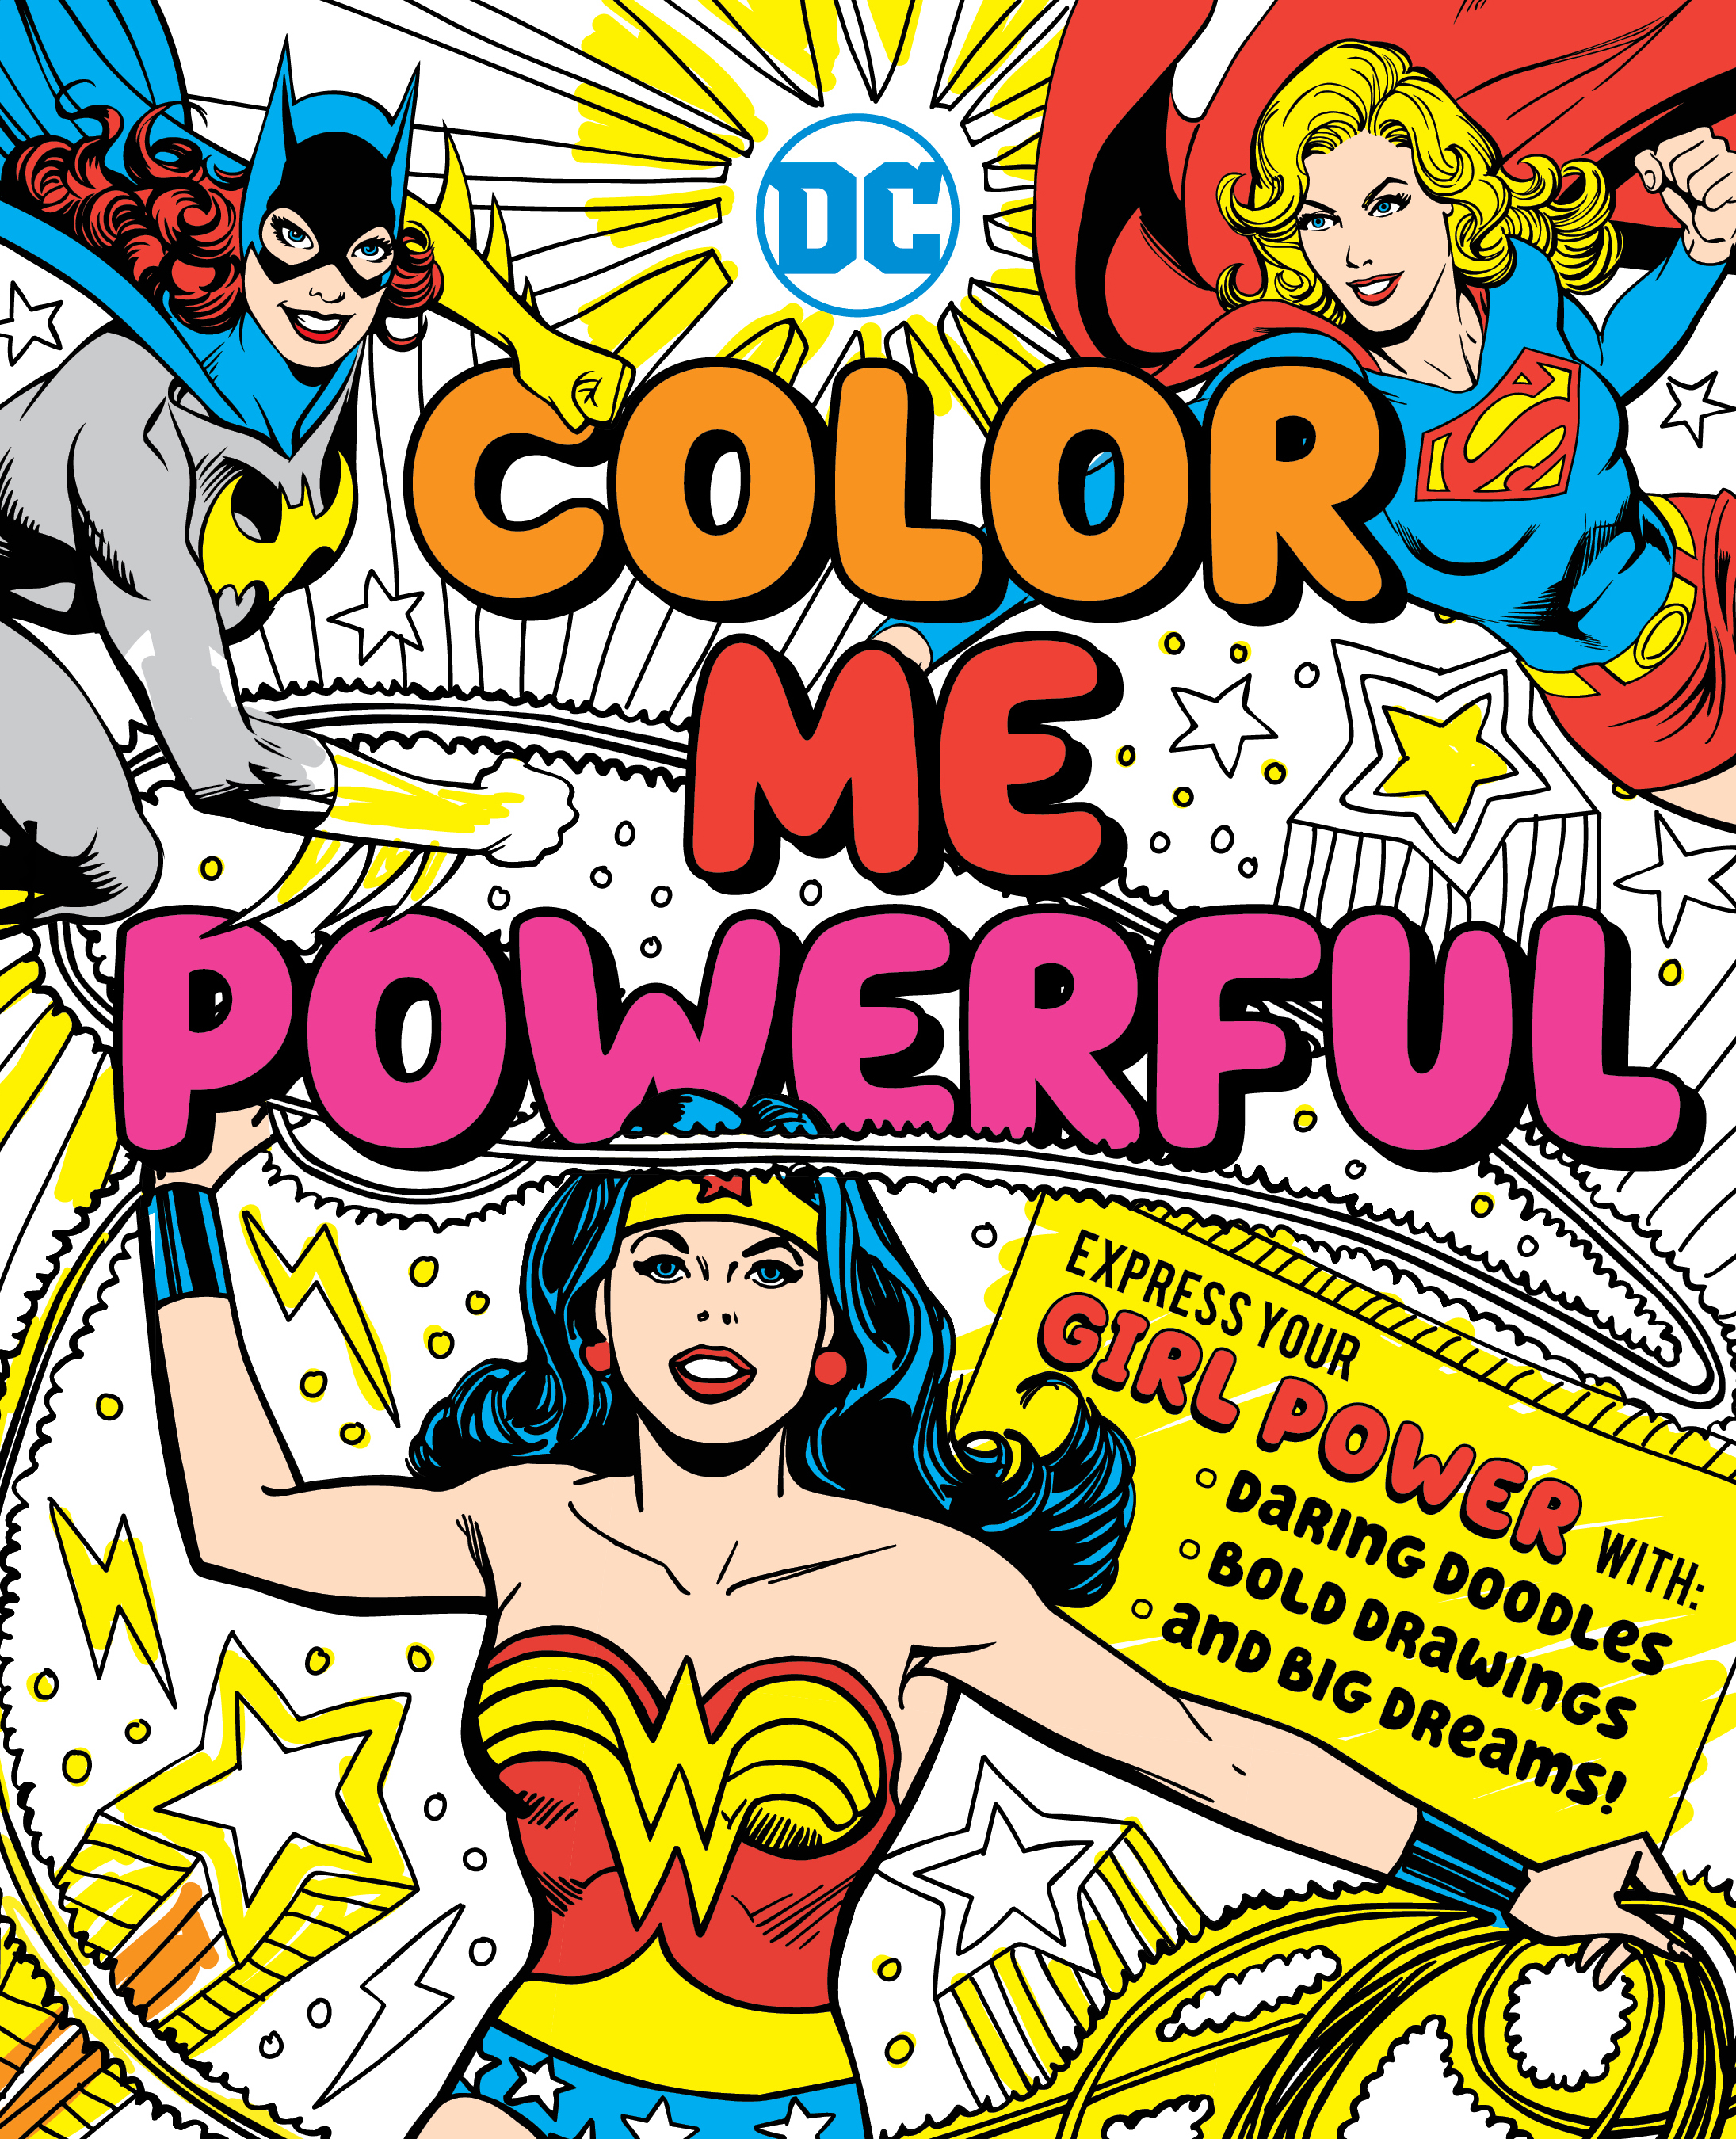 Dc super heroes color me powerful 9781941367506 hr